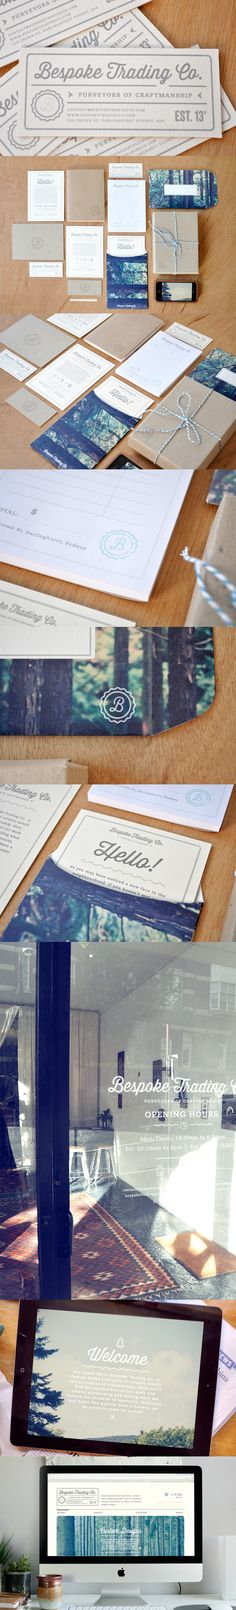 Bespoke Trading Co. Bespoke Trading Co / by Olivia King / logo / identity / branding / stationary / application / business card / rural / natural / rustic / outdoorsy / clean / trees Brand Identity Design, Corporate Design, Graphic Design Typography, Branding Design, Logo Design, Identity Branding, Corporate Identity, Visual Identity, Web Design